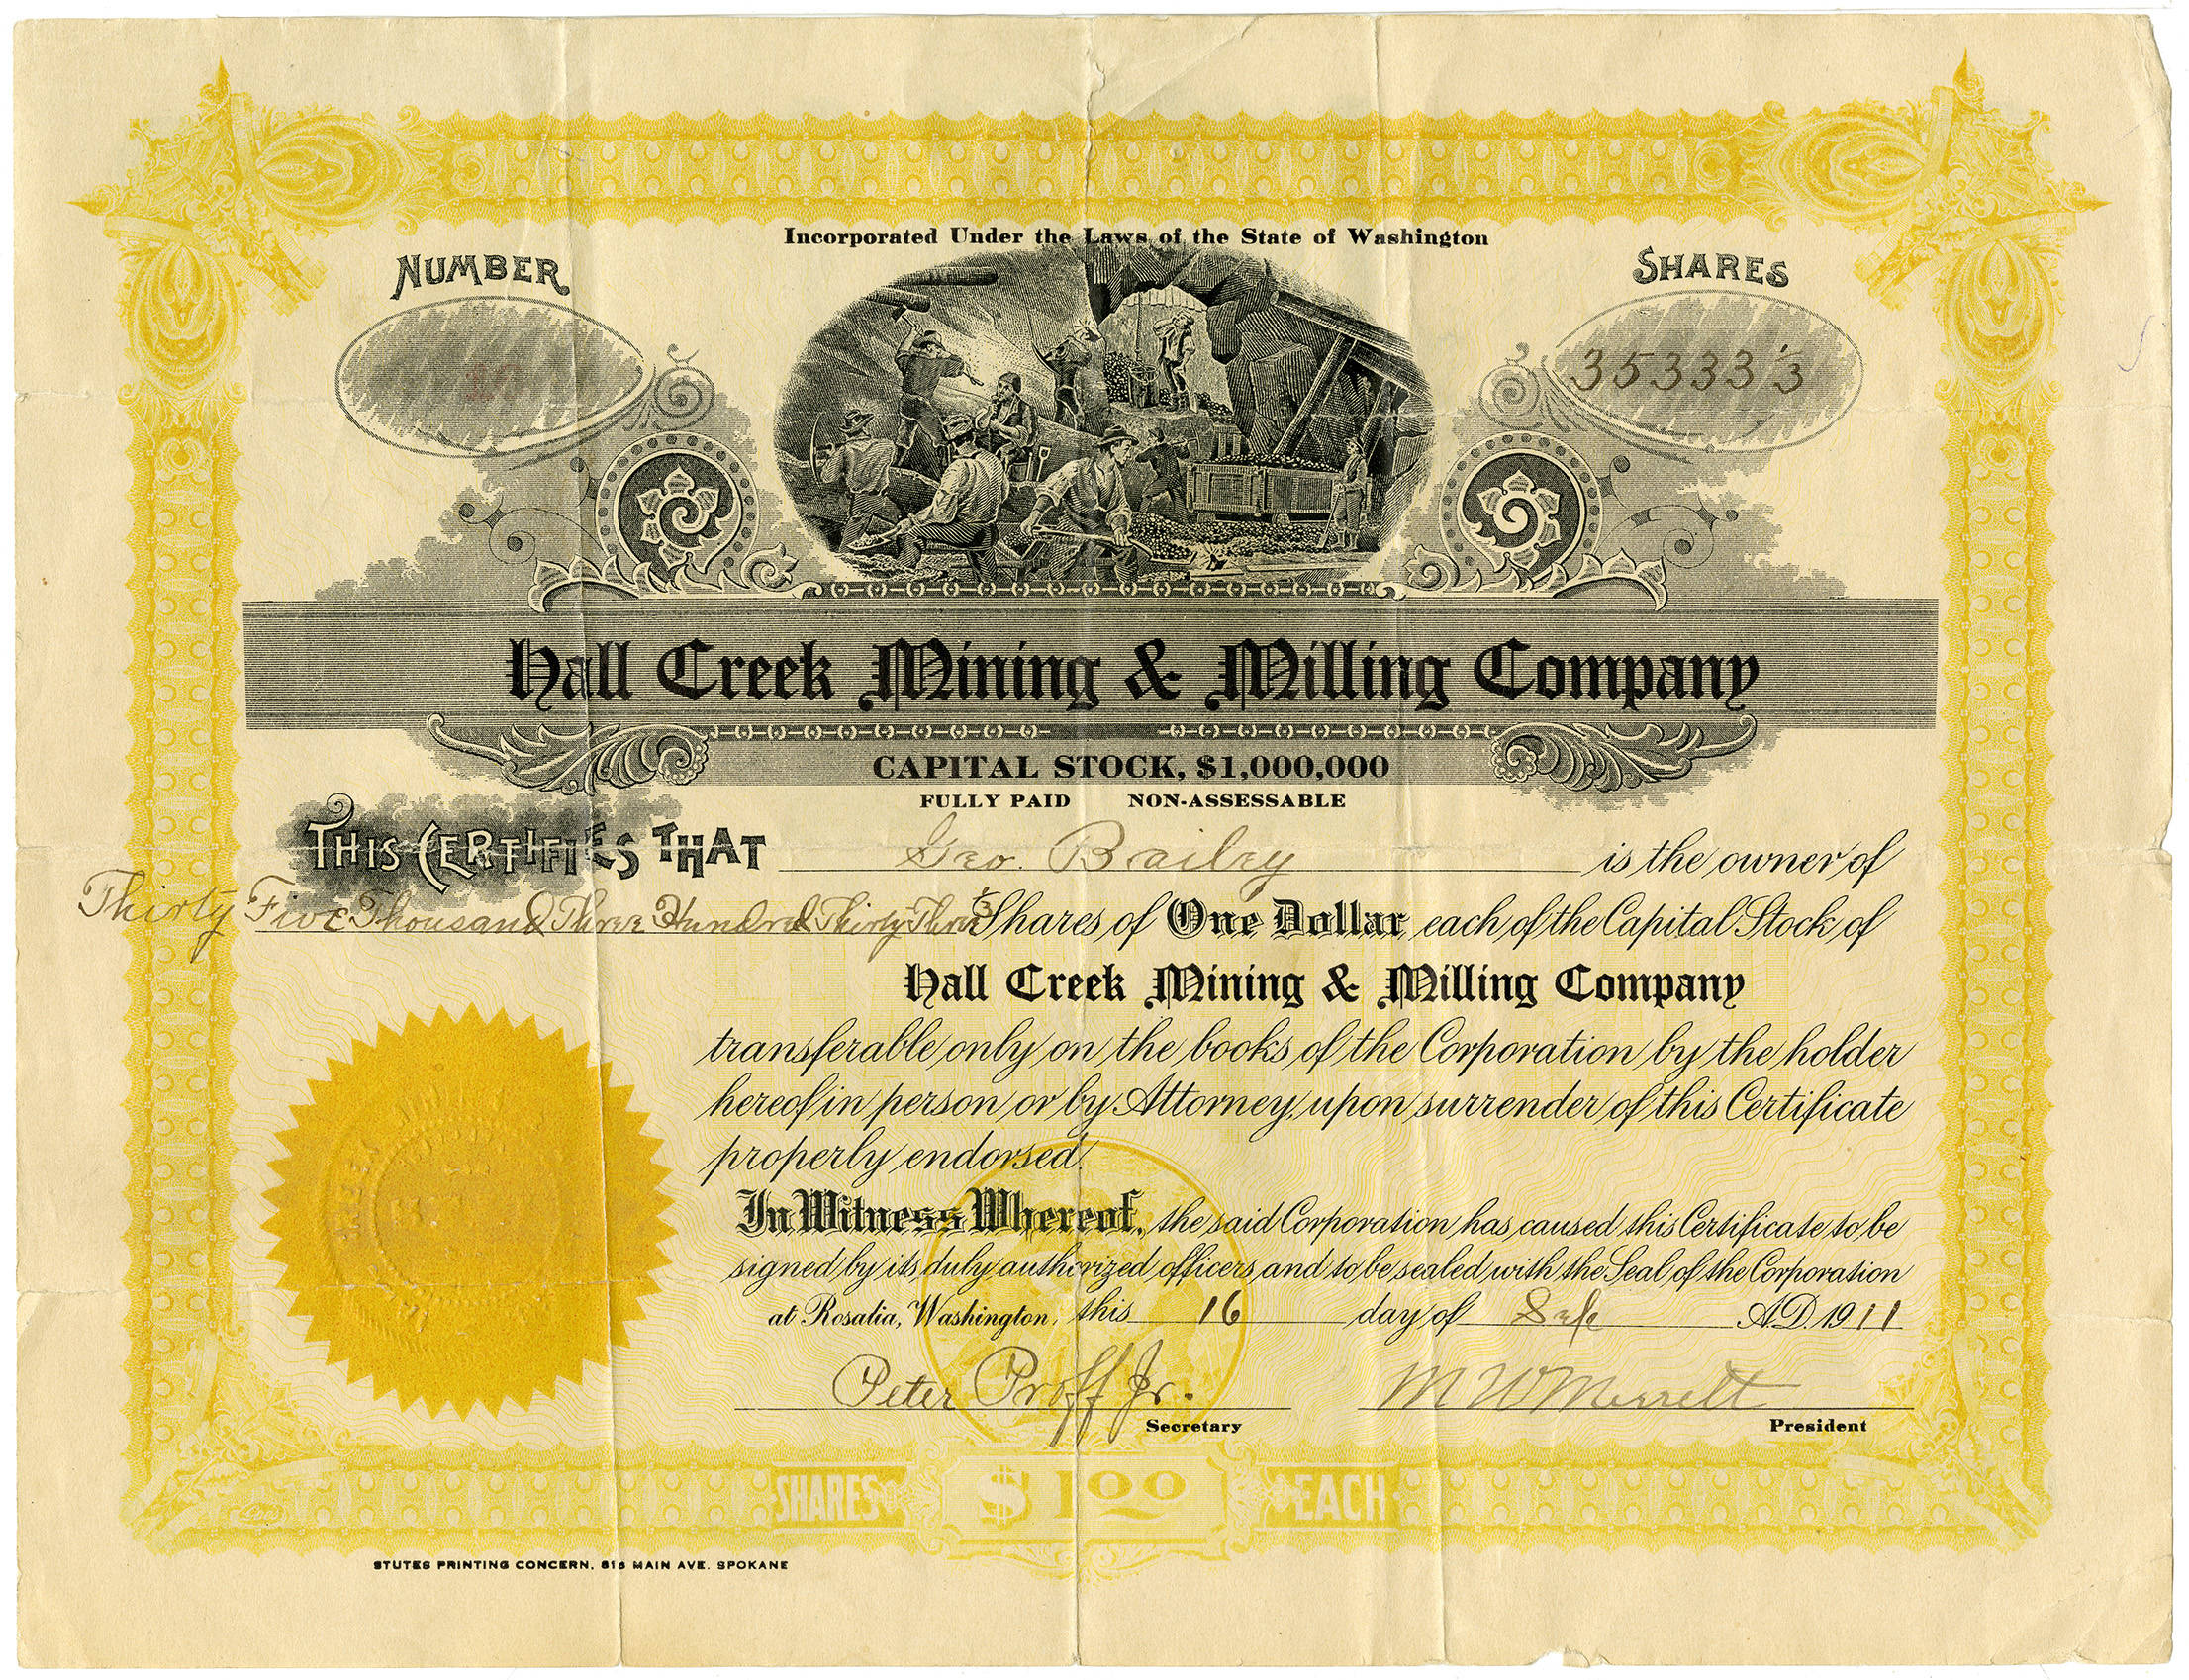 Hall_Creek_mining_stock_certificate_1911